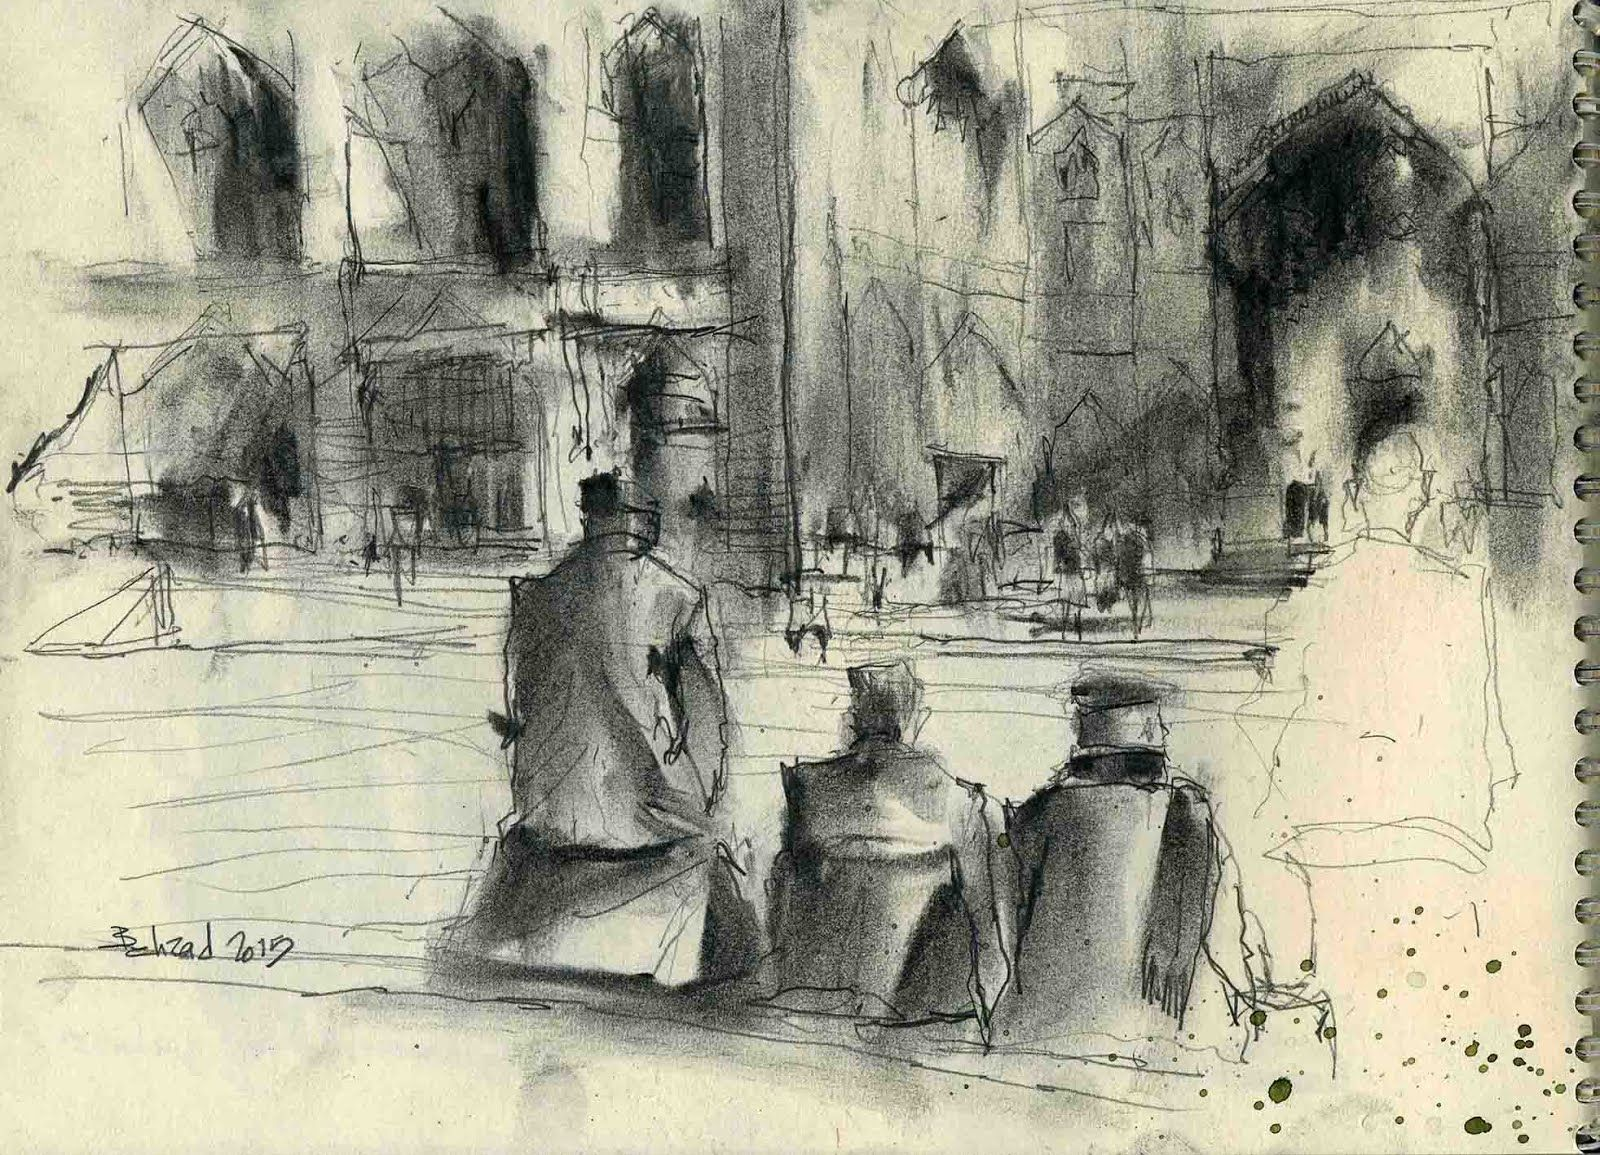 Urban sketchers old subjects new viewpoints 1